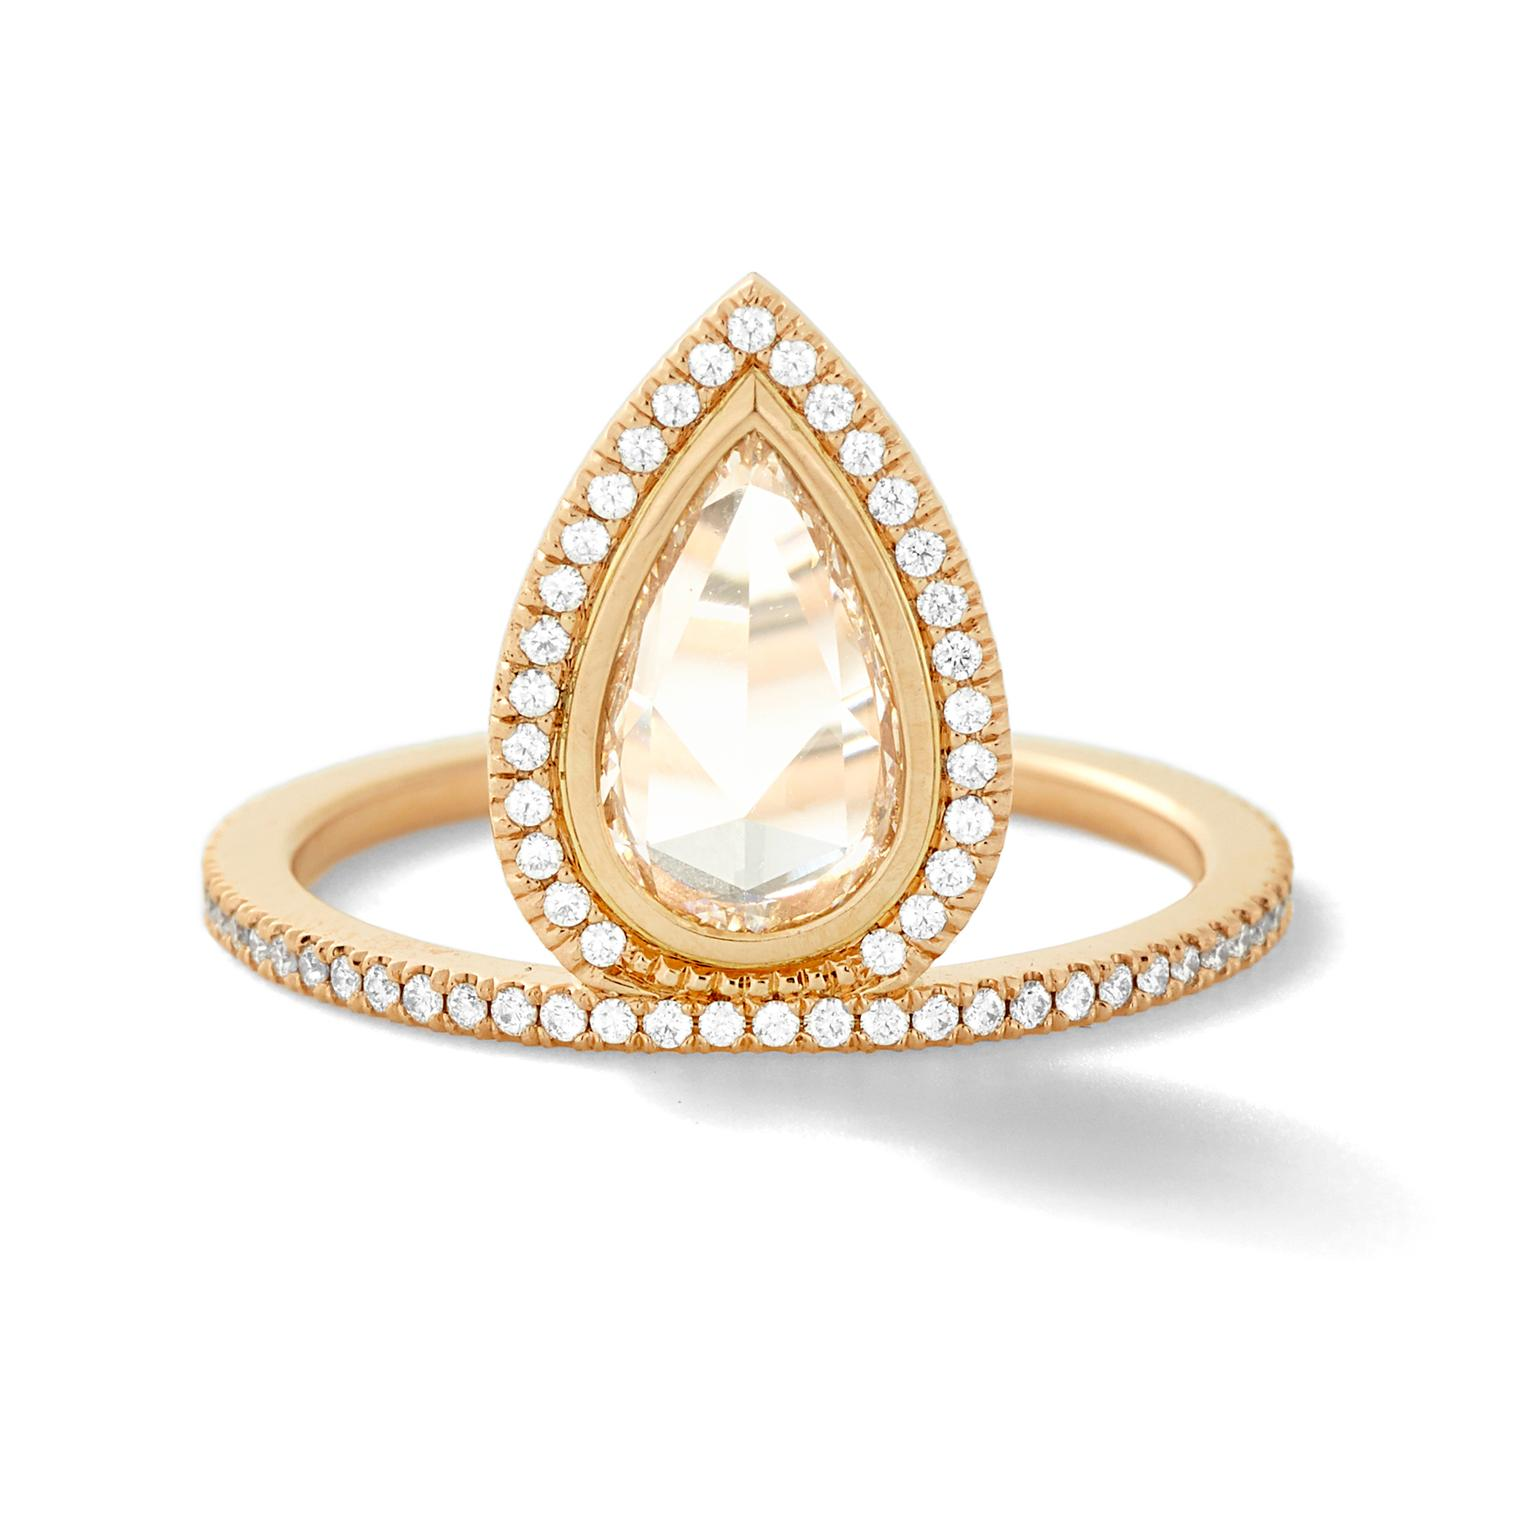 Eva Fehren Gatsby diamond ring